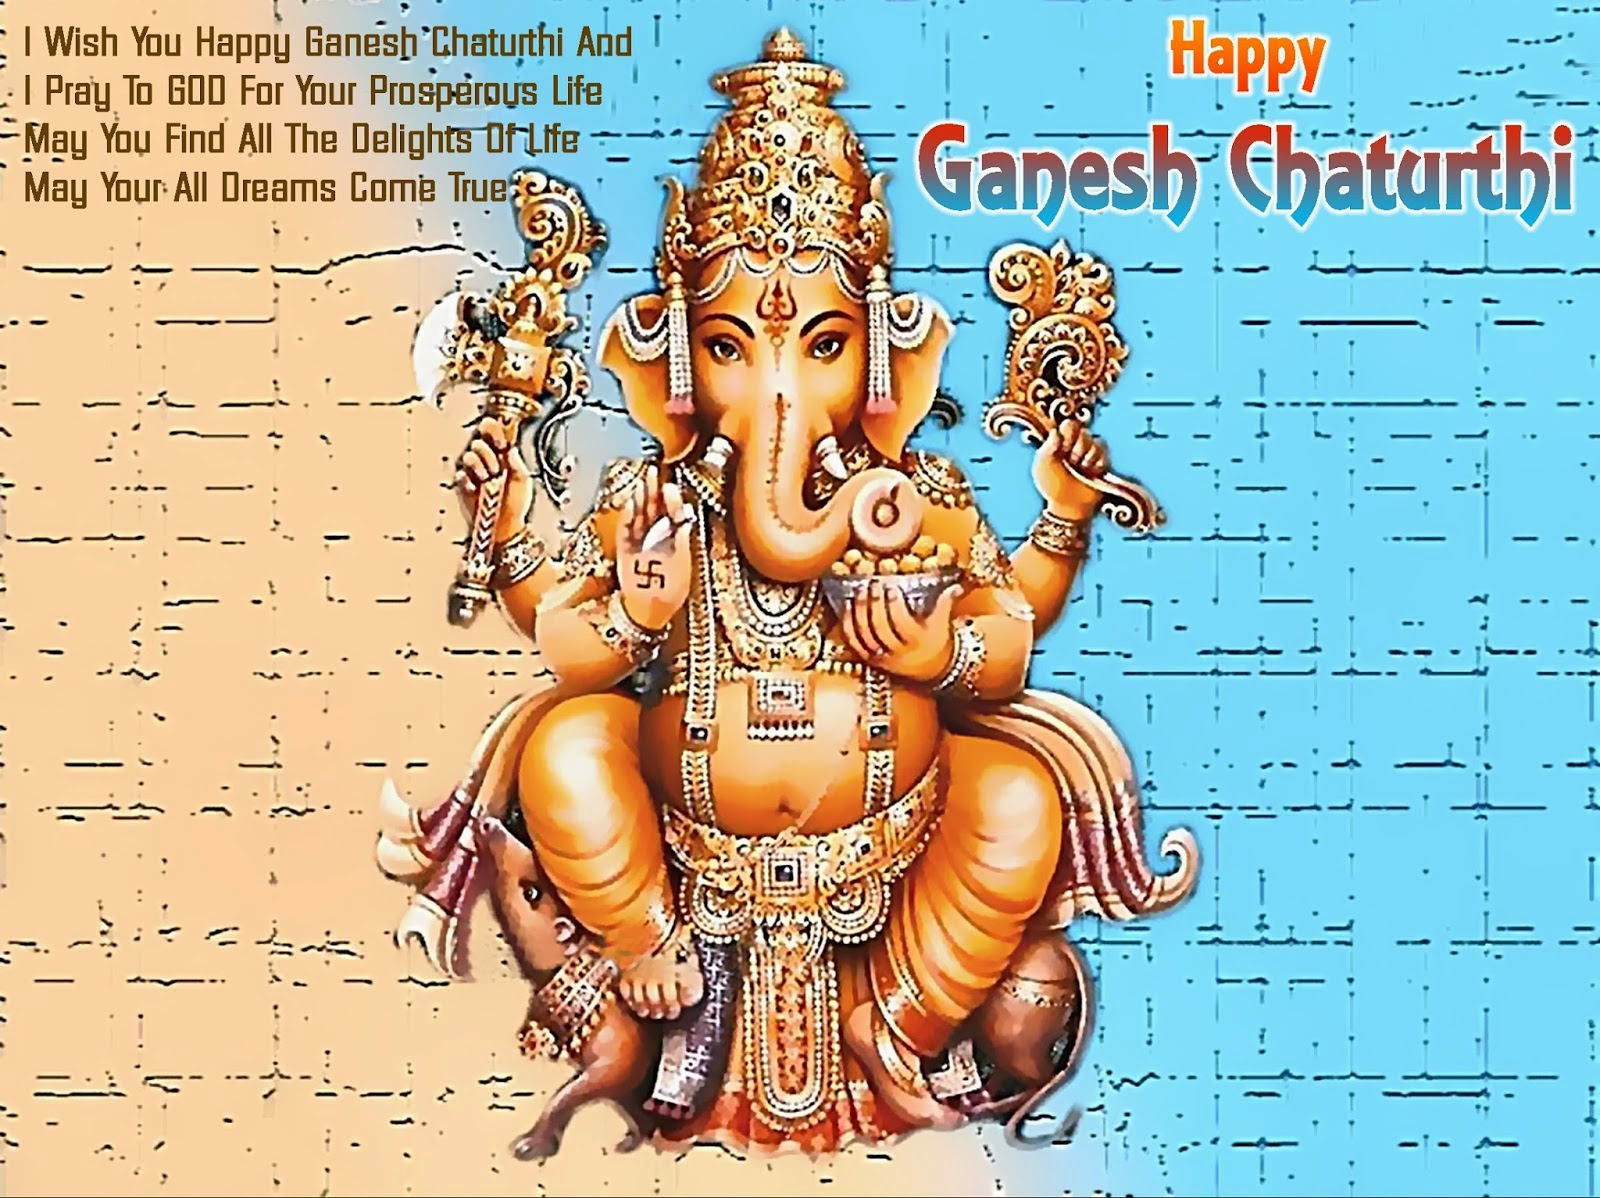 SMS of ganesh chaturthi